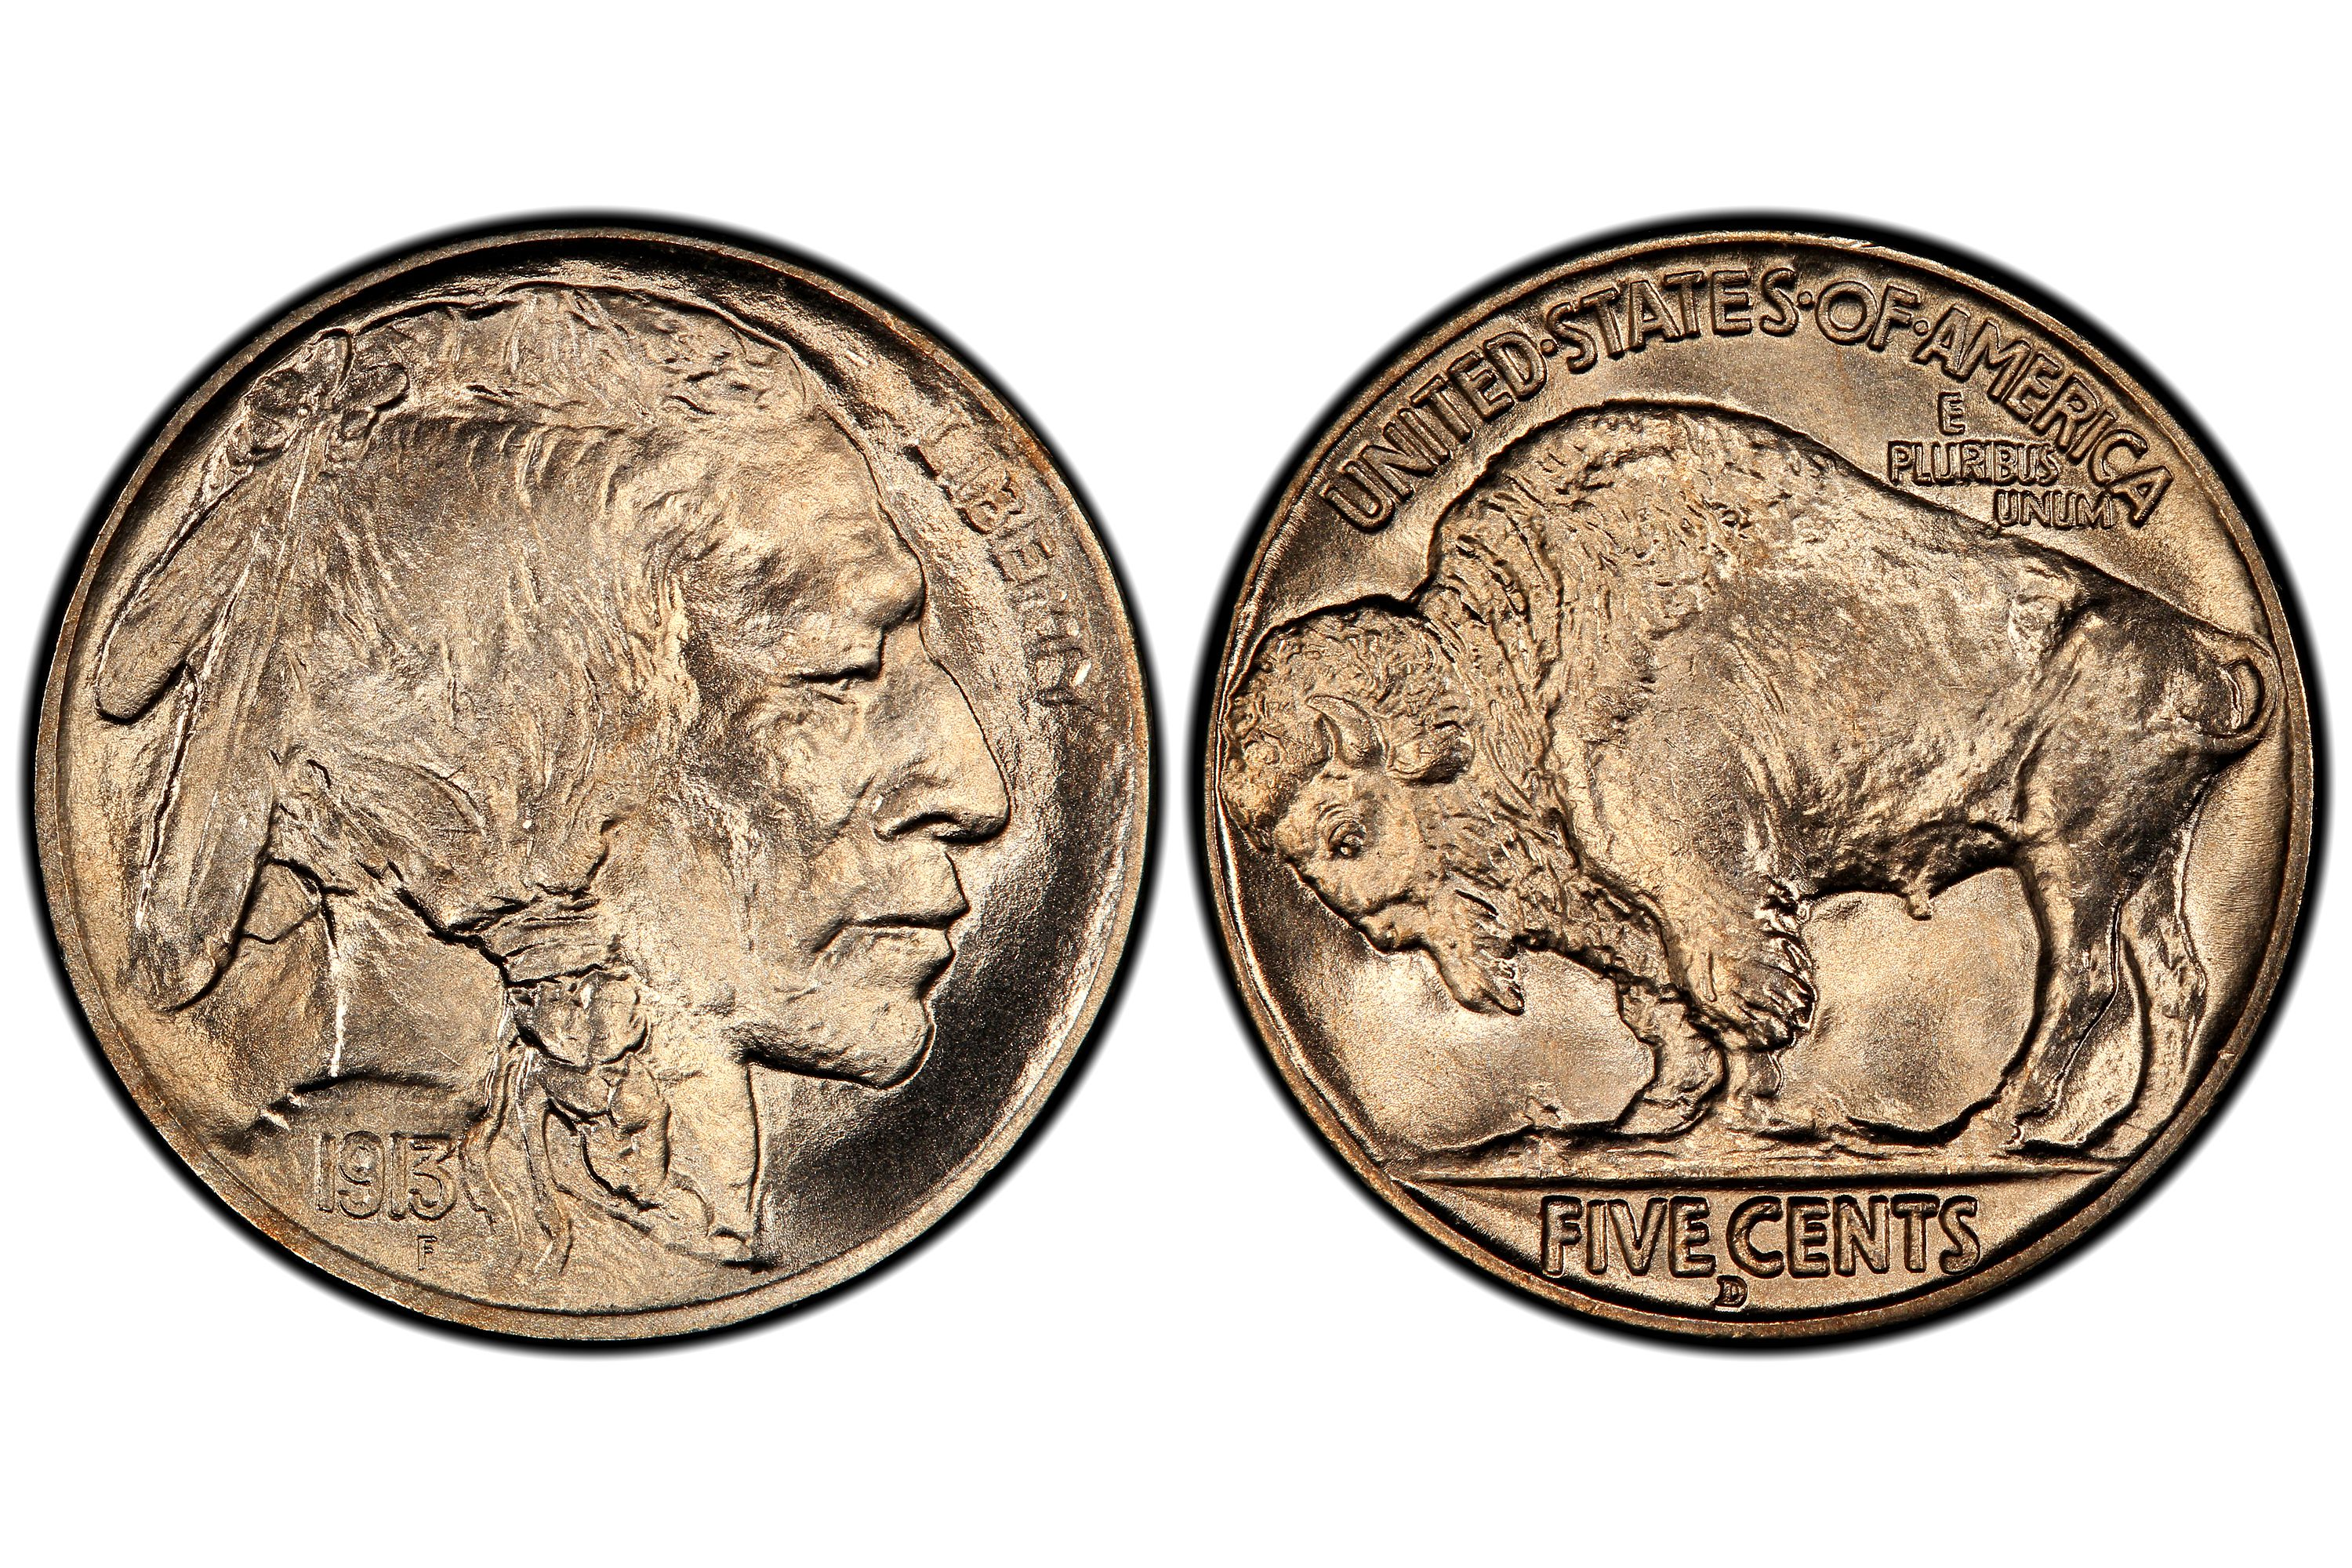 The Top 15 Most Valuable Nickels